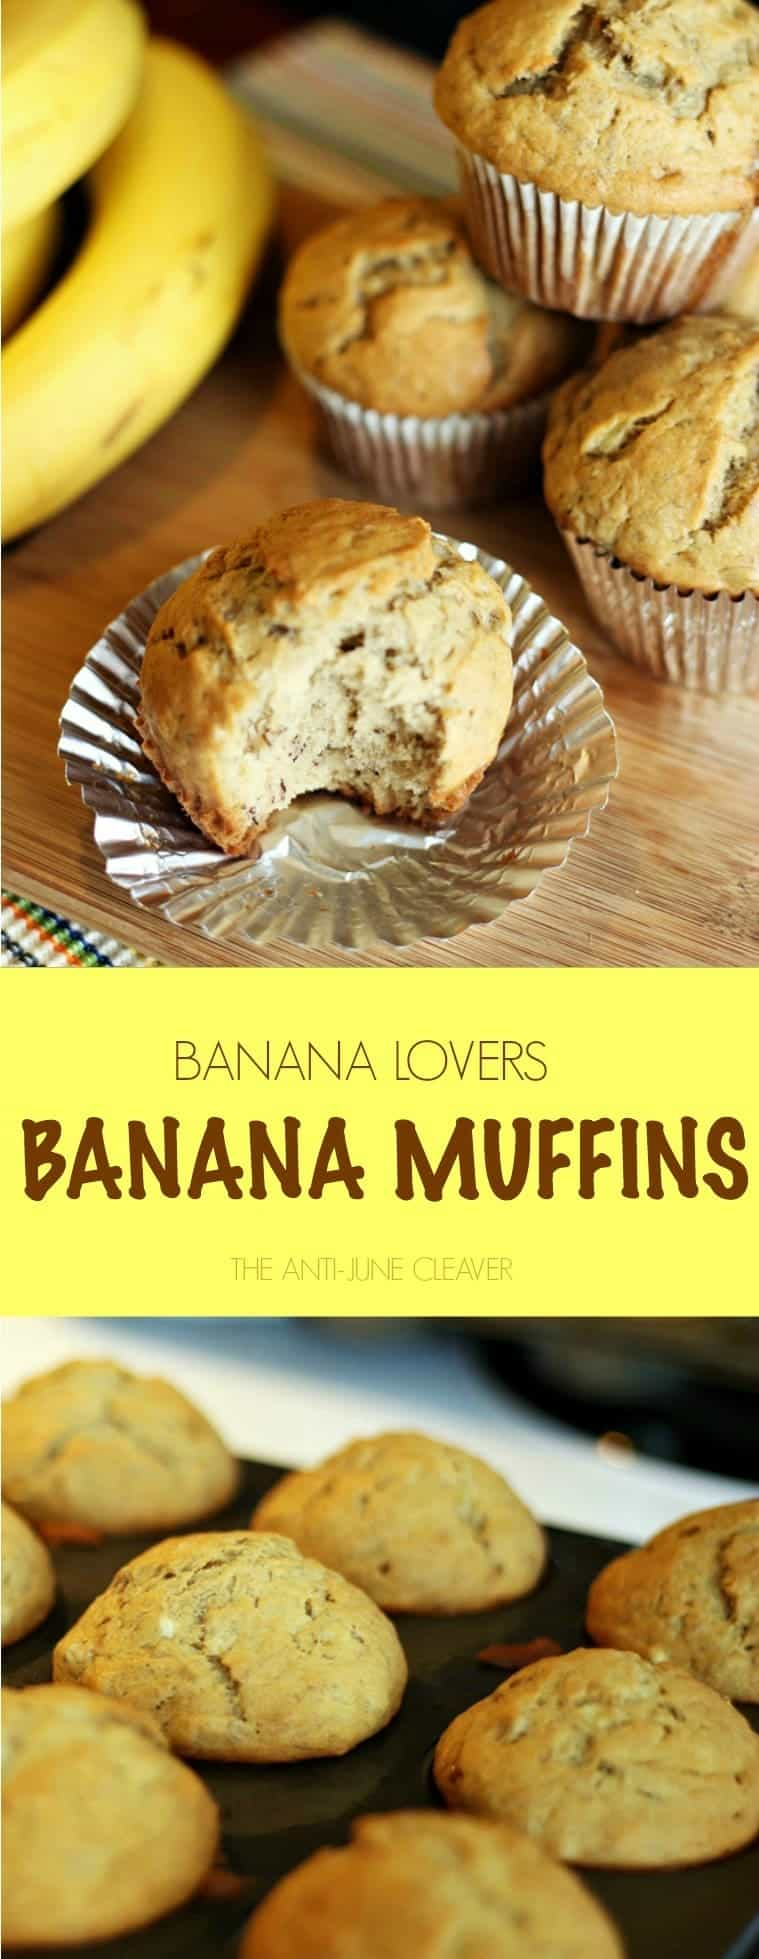 If you love bananas, you will love these banana muffins. Made with almost 3 cups of bananas, these moist and chewy muffins (or banana bread) are moist, delicious perfection.